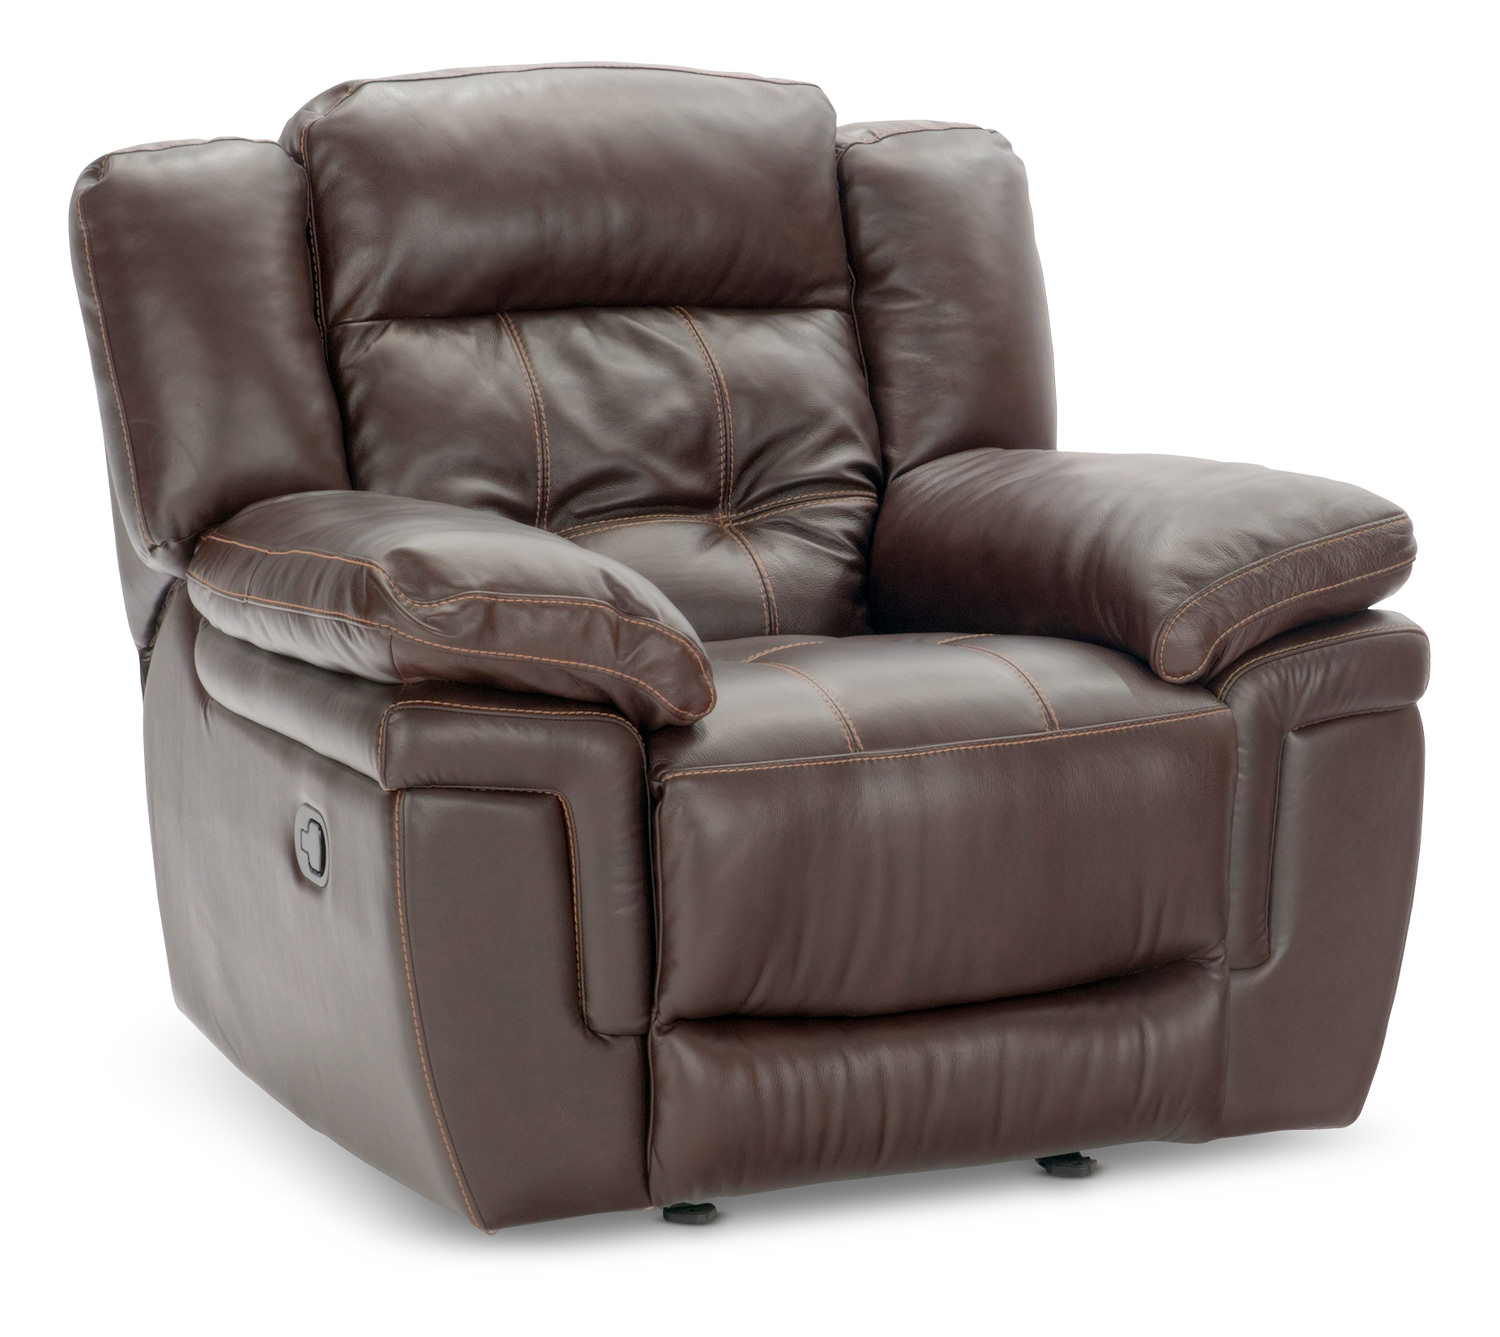 Hallmark Leather Glider Recliner Hom Furniture